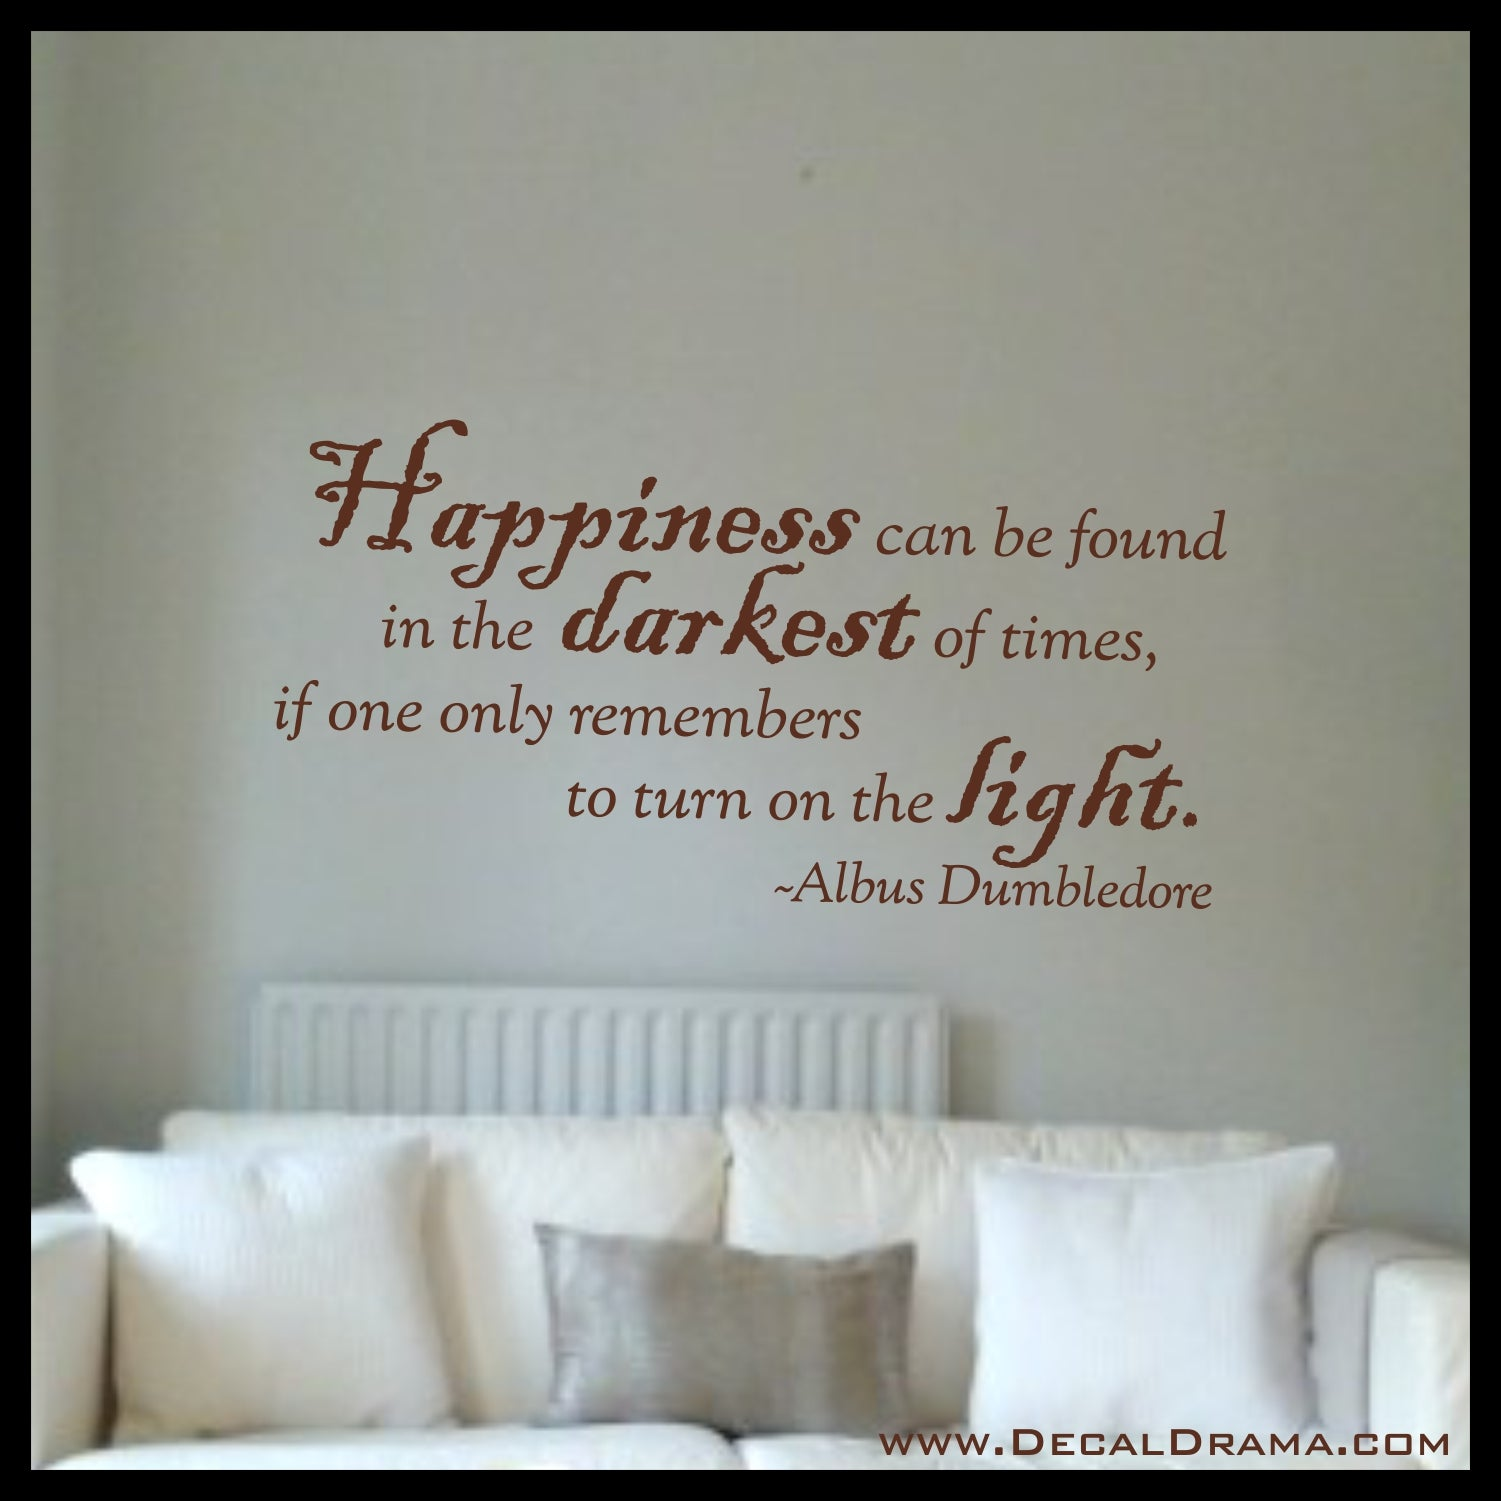 Happiness can be Found in the Darkest of Times if One Only Remembers to Turn On the Light, Albus Dumbledore, Harry-Potter-Inspired Fan Art Vinyl Wall Decal